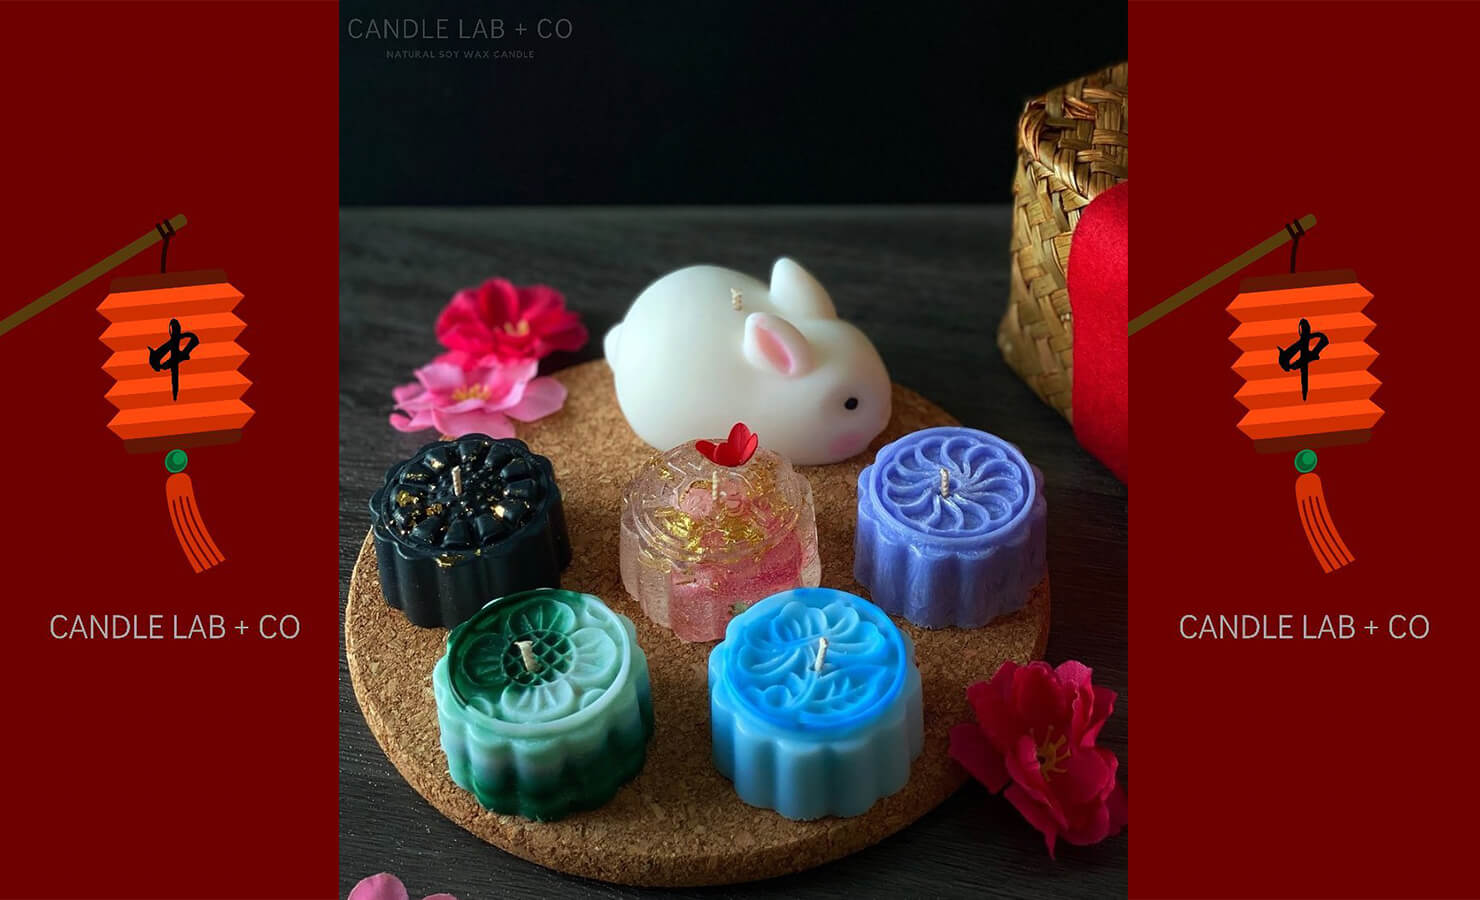 bloomthis-mid-autumn-festival-gift-guide-2021-07-candle-lab-co